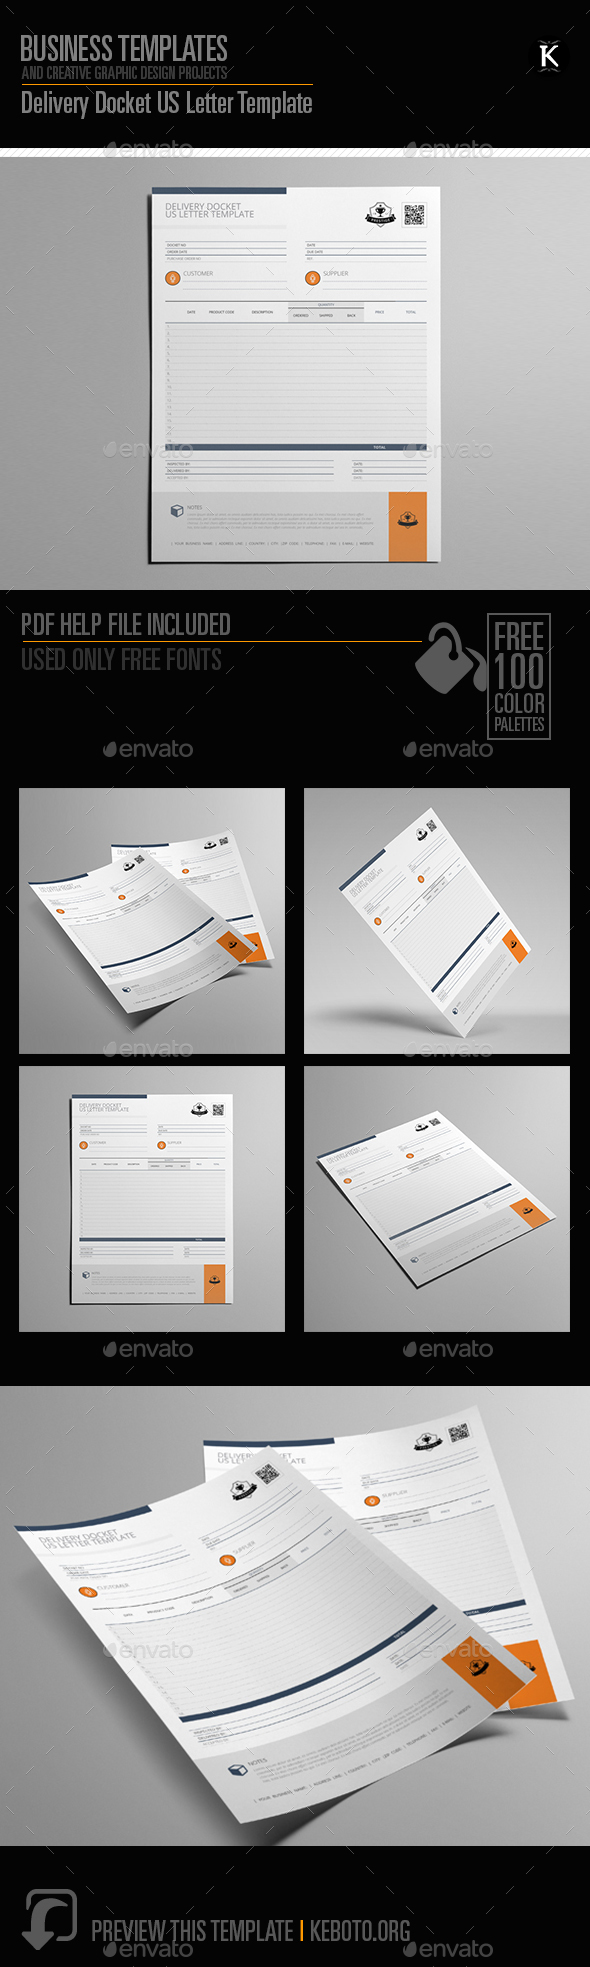 Delivery Docket US Letter Template - Miscellaneous Print Templates